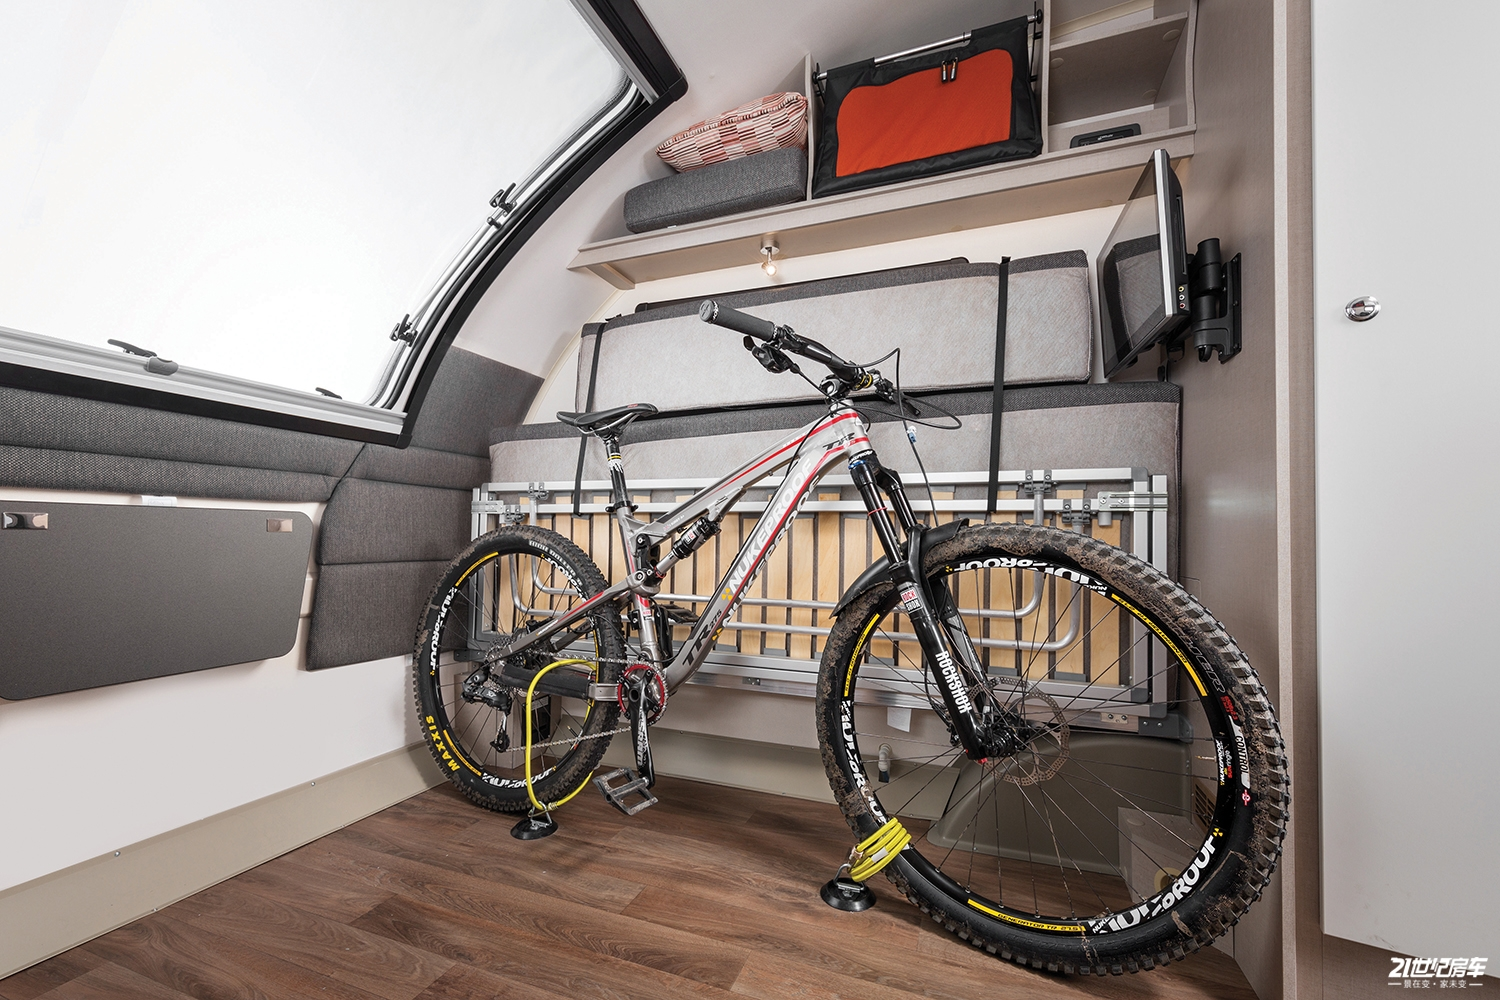 int-basecamp-2-front-lounge-with-bikes-rgb.jpg